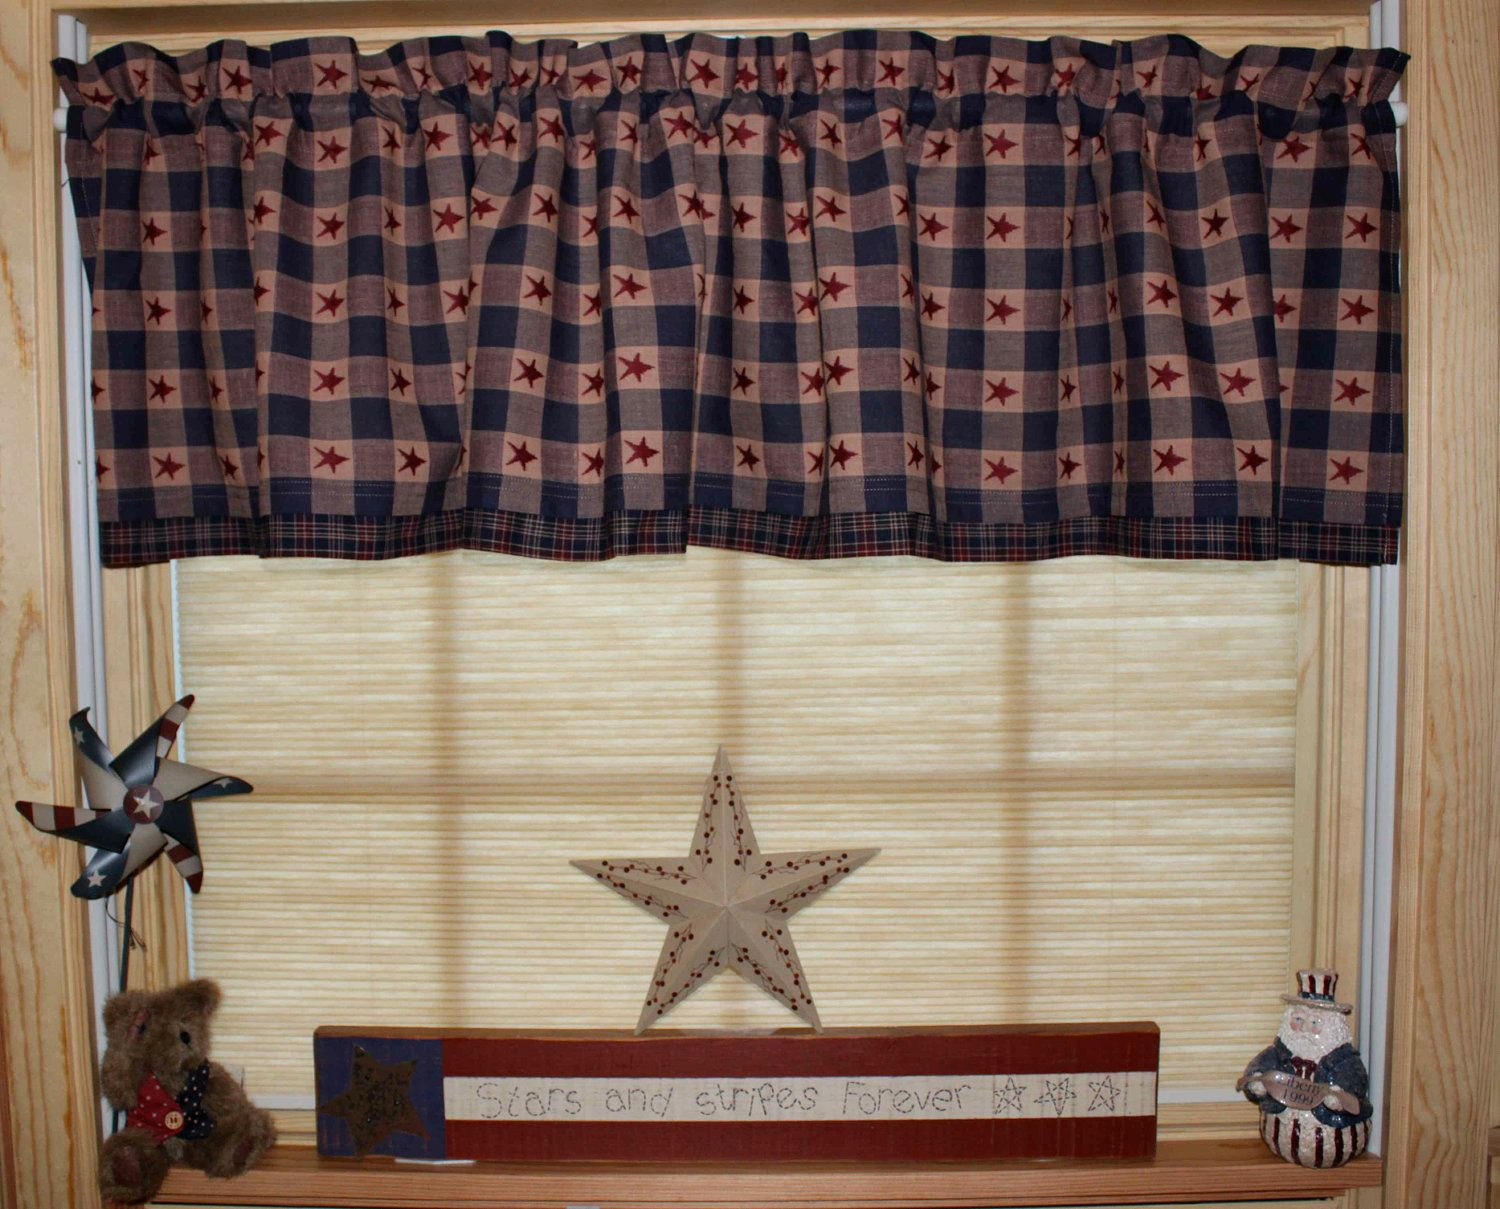 Gentil Primitive Americana Country Curtain Valance. $22.95, Via Etsy. Hobby Lobby  Has This Fabric